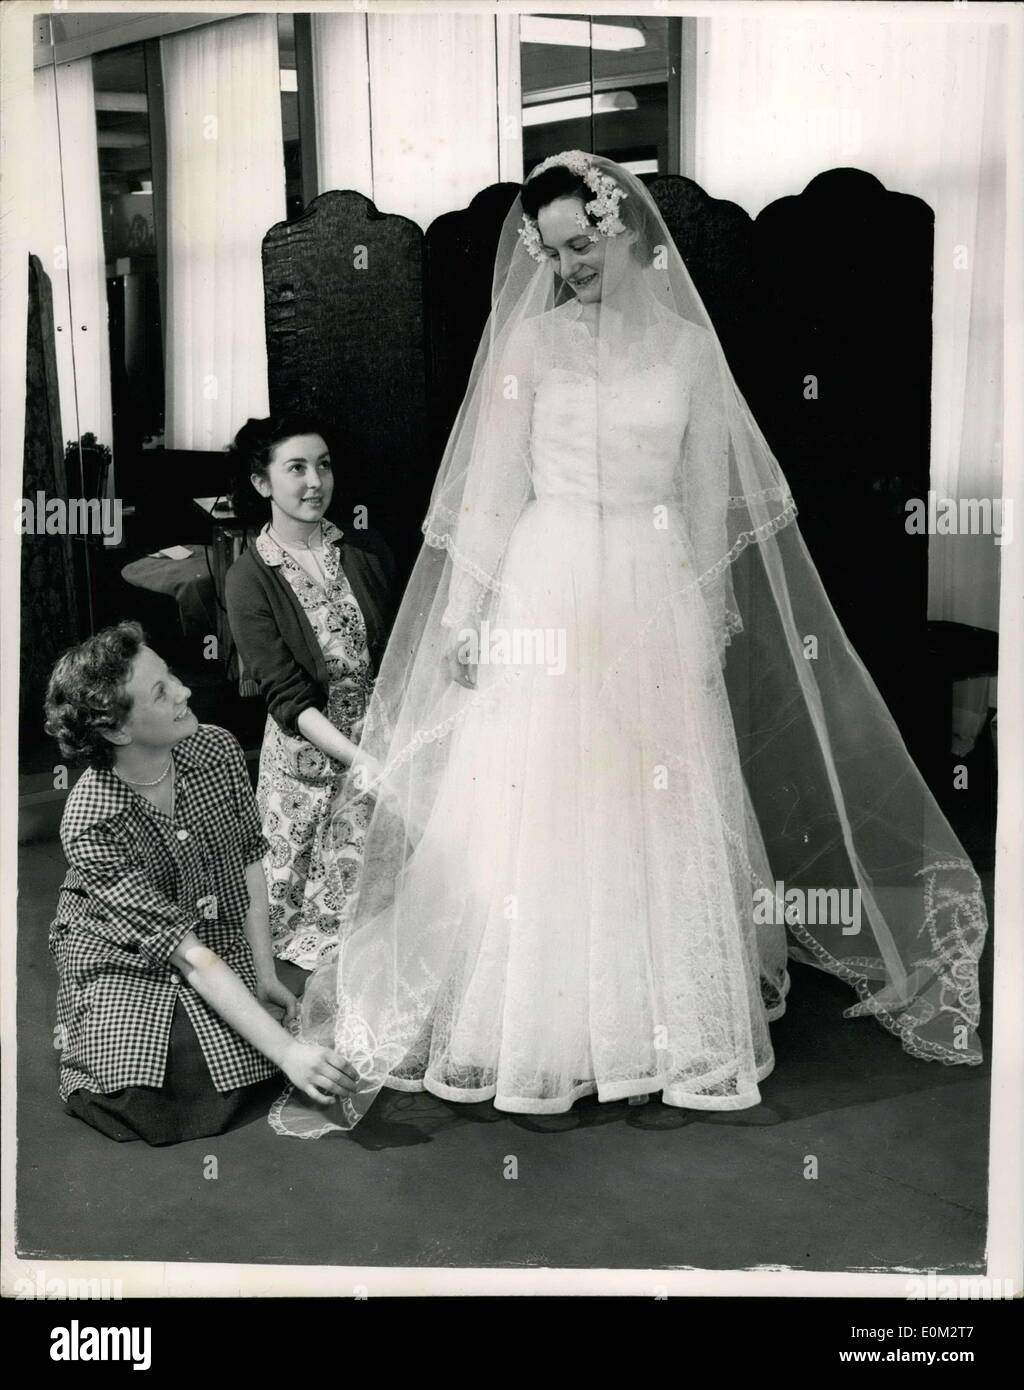 May 13, 1953 - ''Bose'' Presents  With Her Wedding Gown Dig By Morton Employer To Marru: Then twenty-two years old seamstress Joan Merton is married to Sidney Ohrles Watts of Tilse Hill, on Saturday - she will be wearing a glamorous wedding gown of Nottingham Lace over the White Satin with Coronation design at the Neck, embroidered with emblem and races....Joan is employed as a seamstress at the work comes of Digby Morton -- the London designer and for a wedding present Digby Morton has presented her with wedding gown - Stock Image